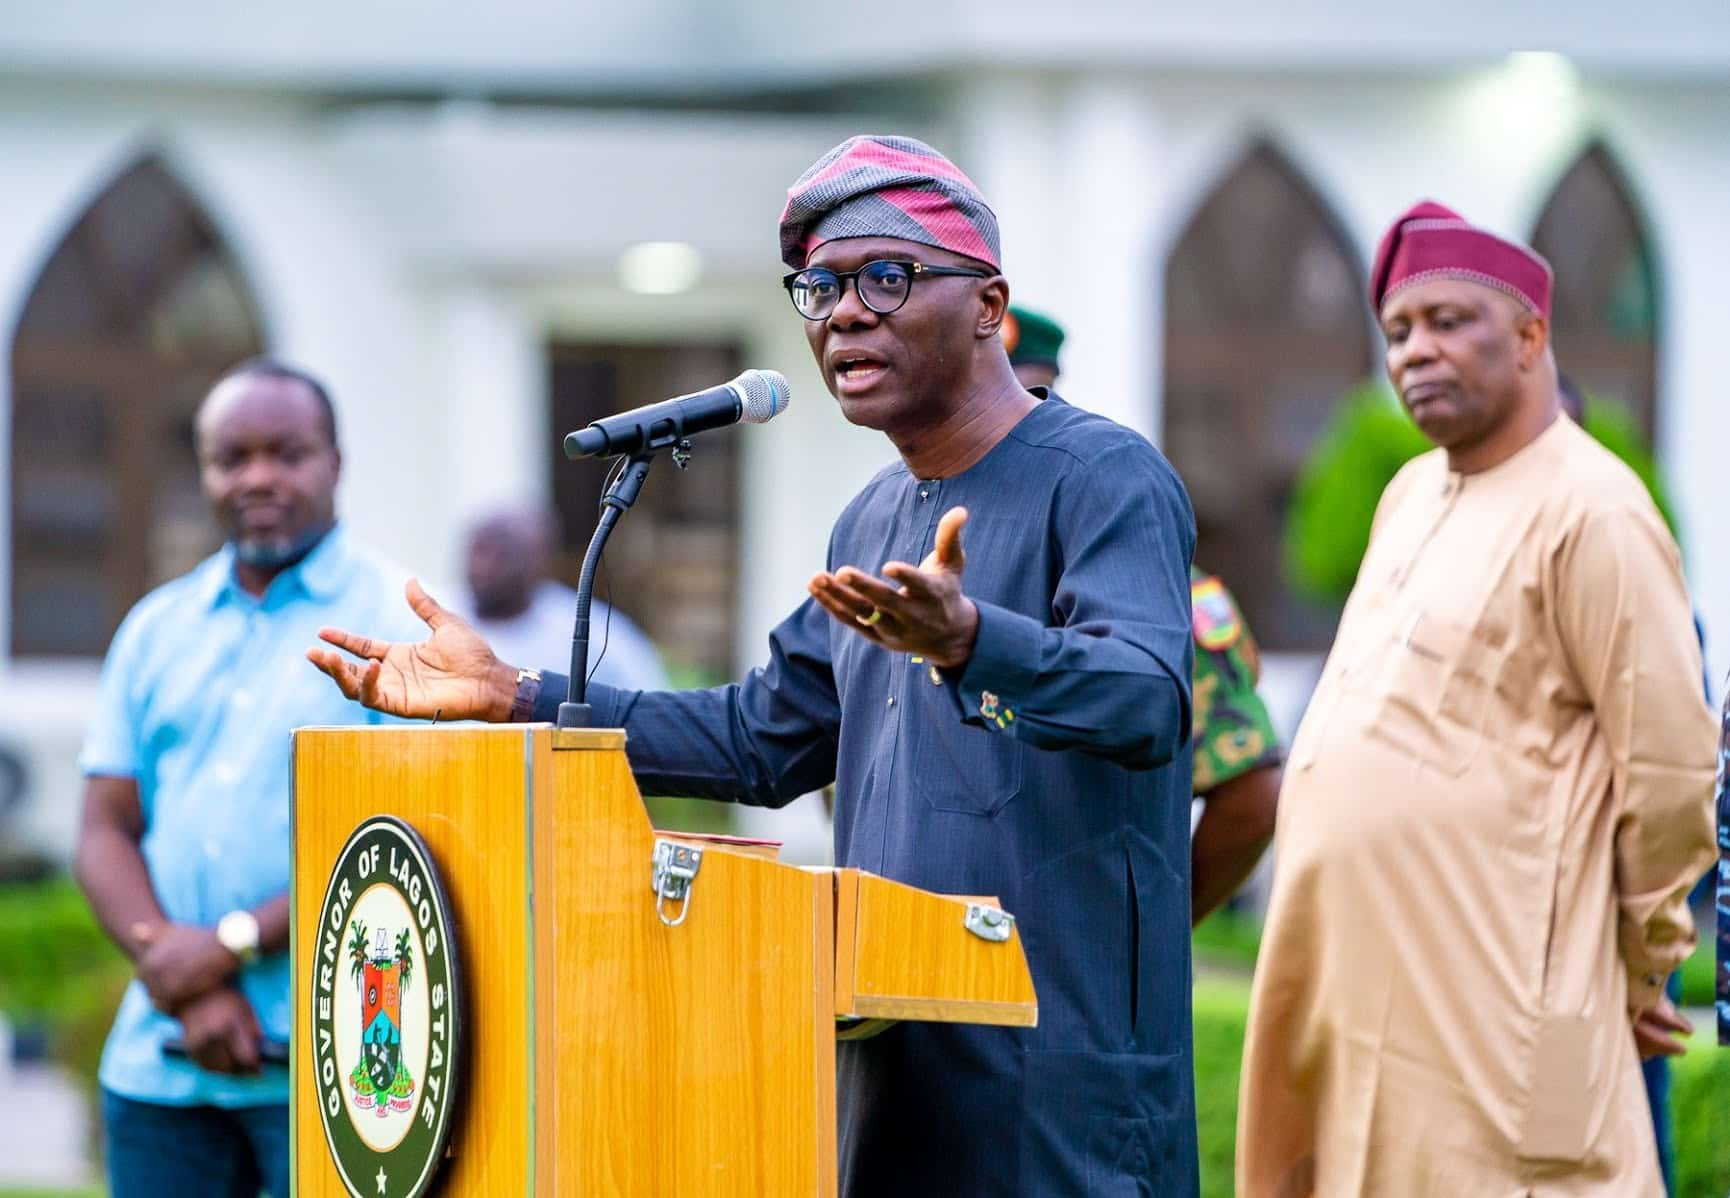 FG, Lagos move to address infrastructural decline in FESTAC Town - Connectley News